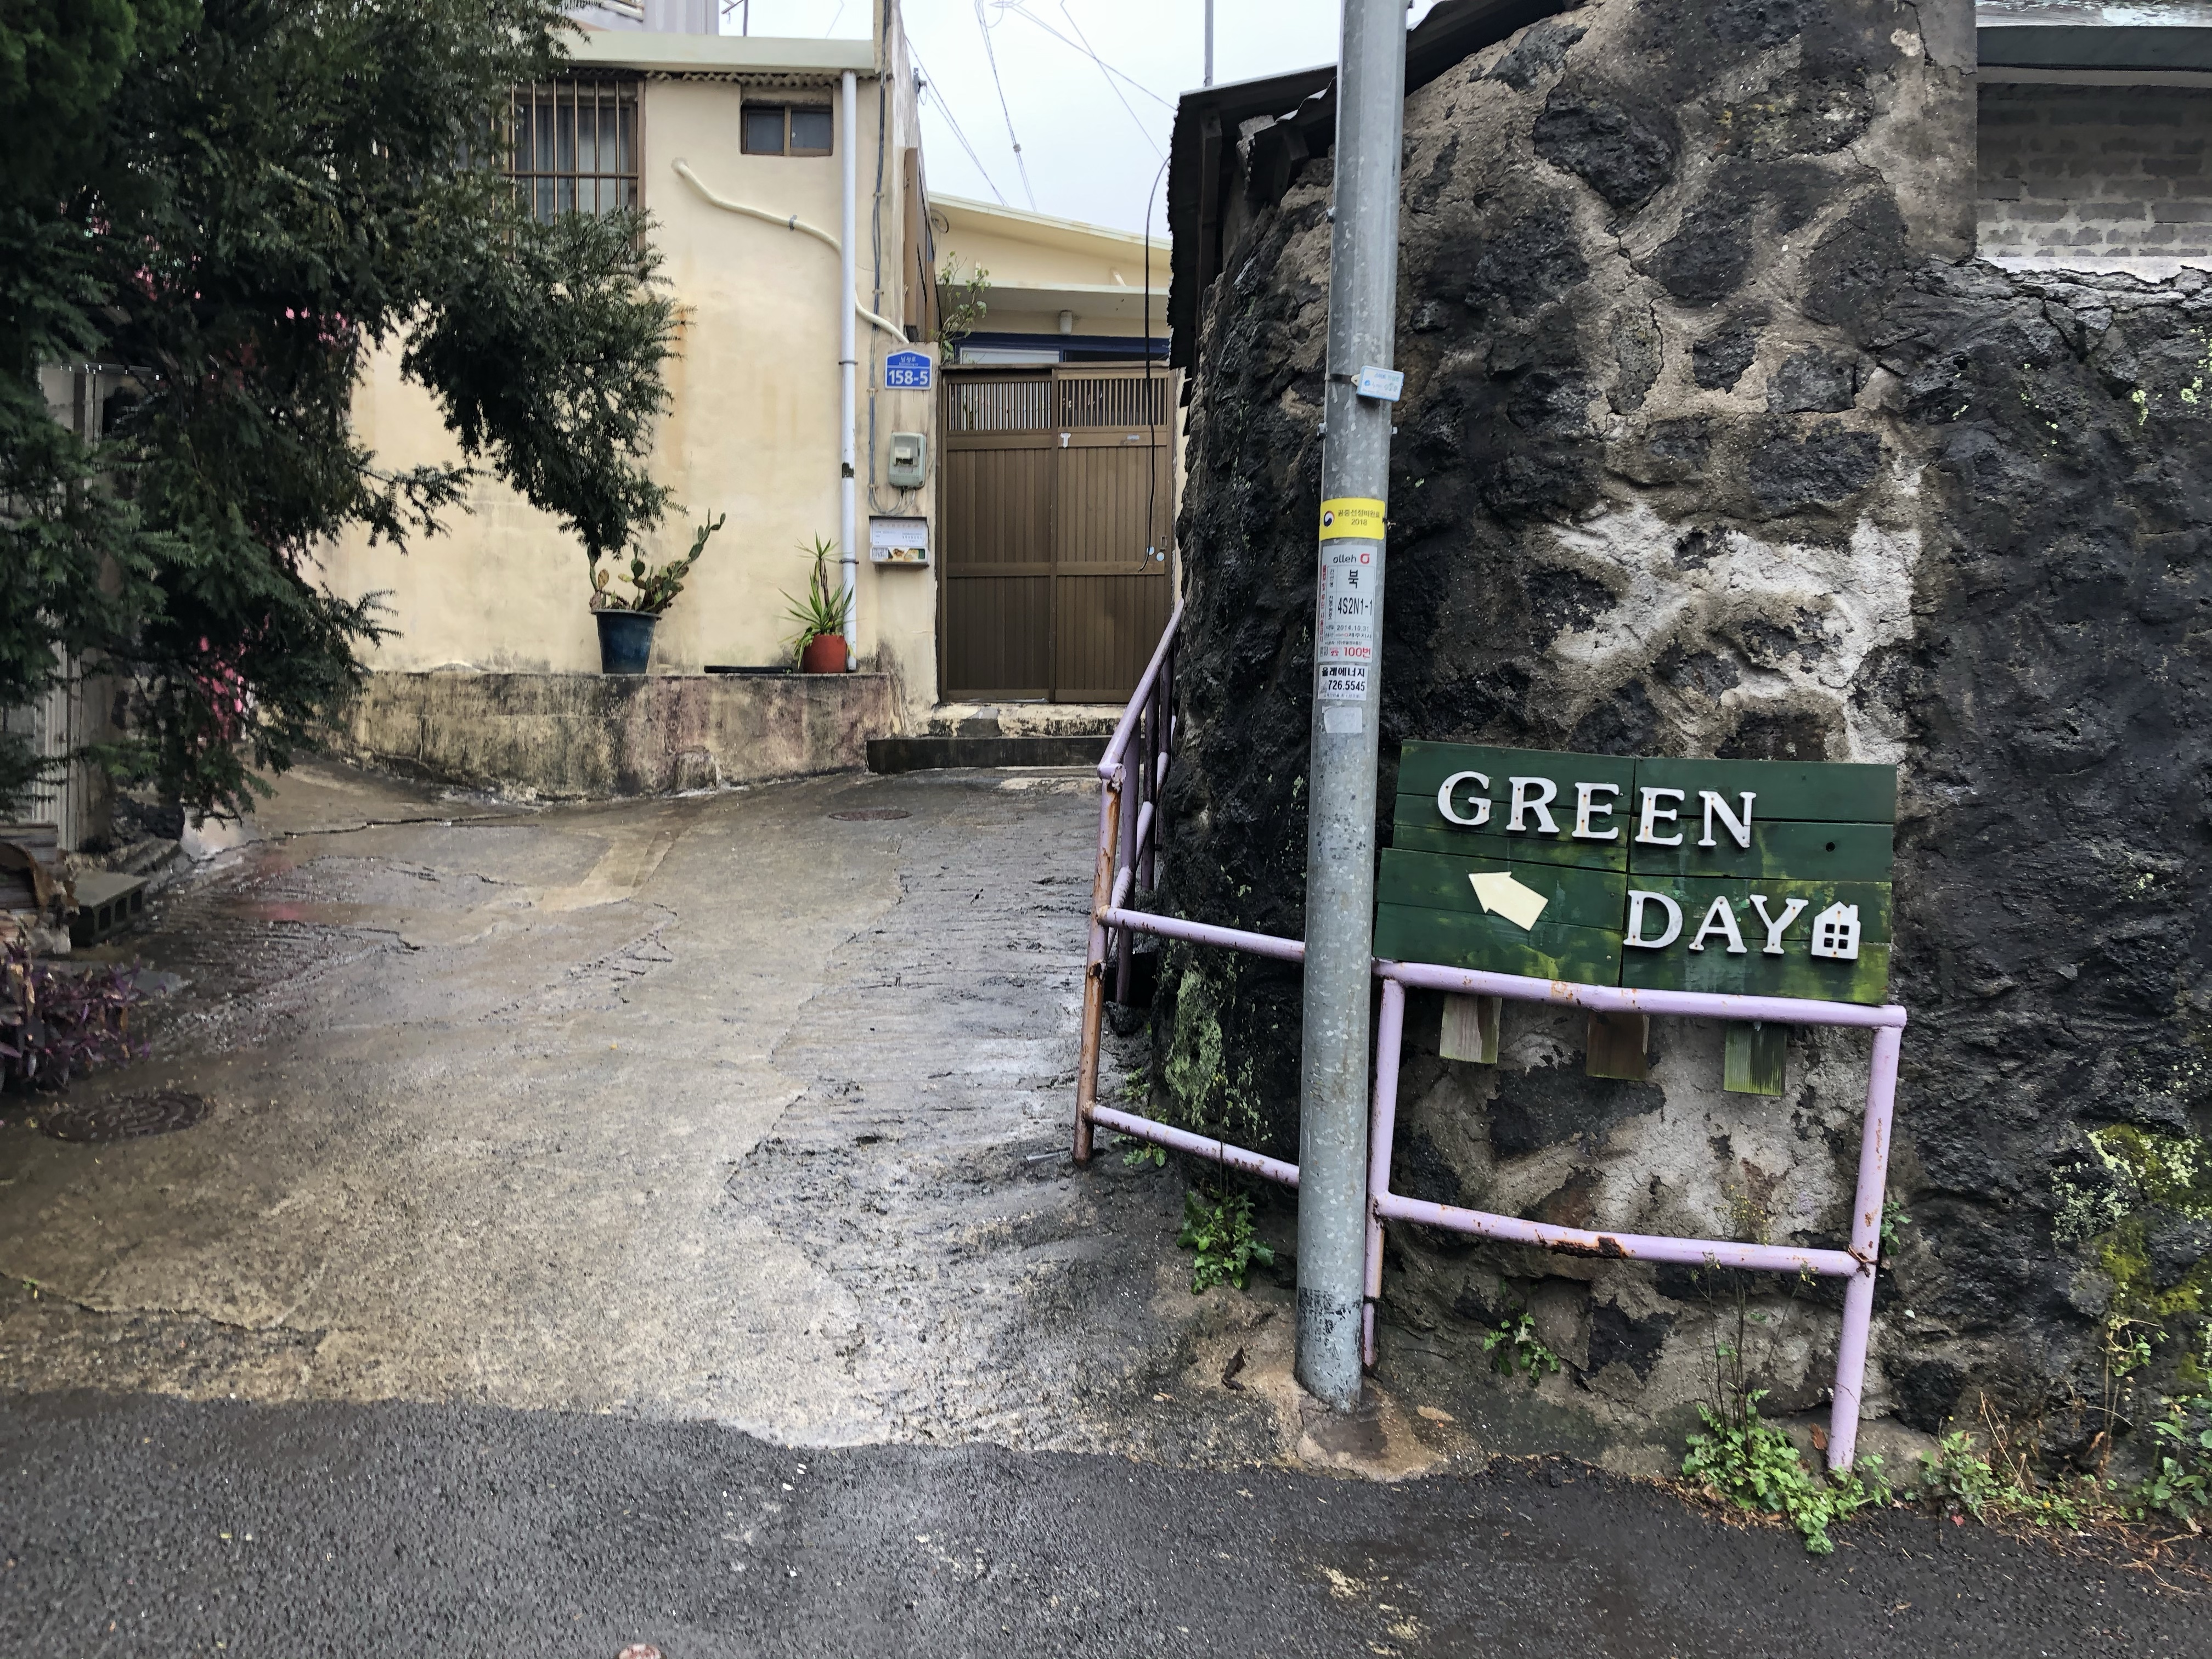 Greenday Guesthouseの道順